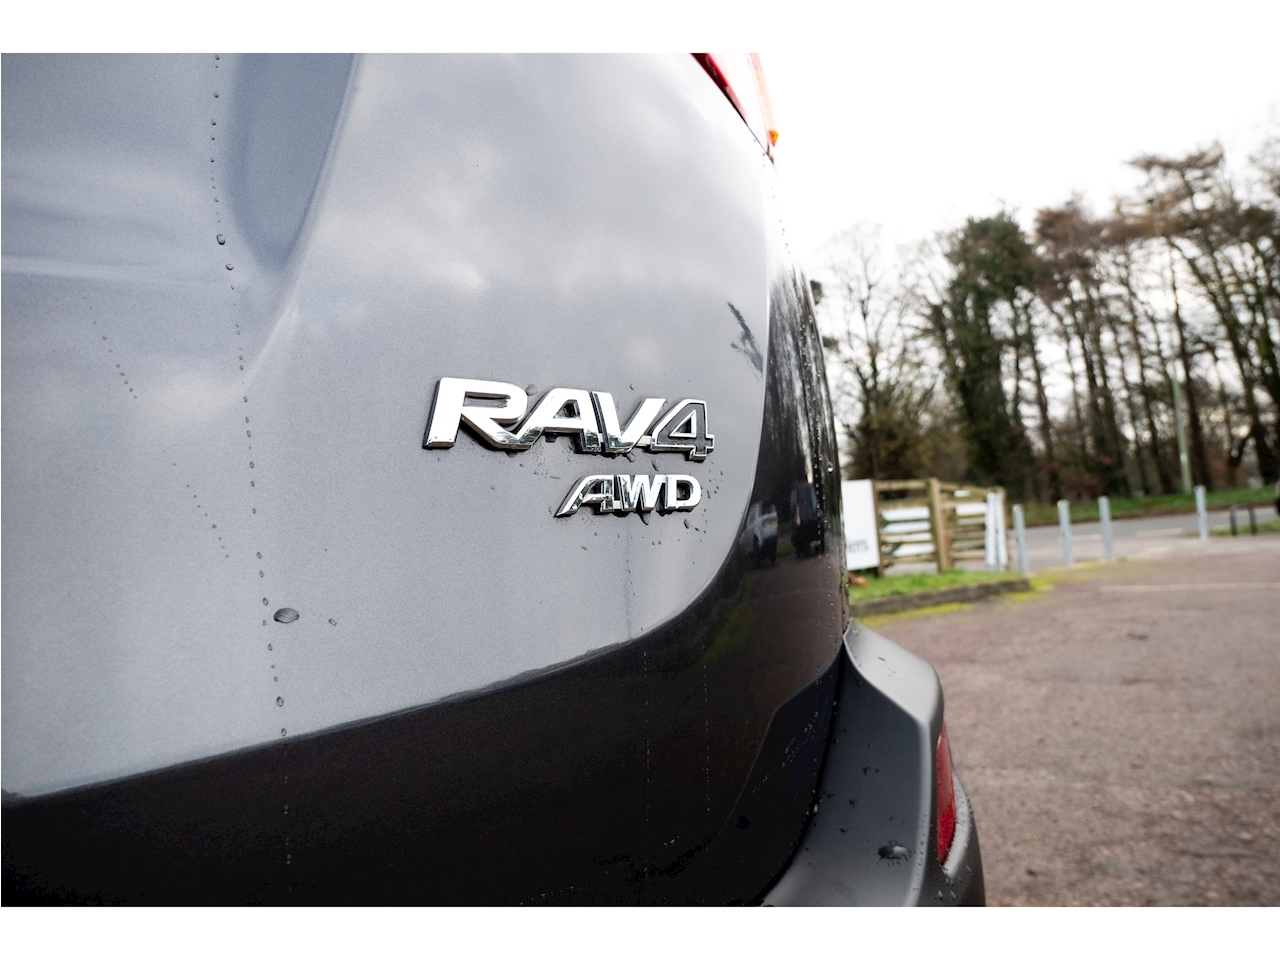 Toyota Rav4 D-4D Invincible Estate 2.2 Manual Diesel